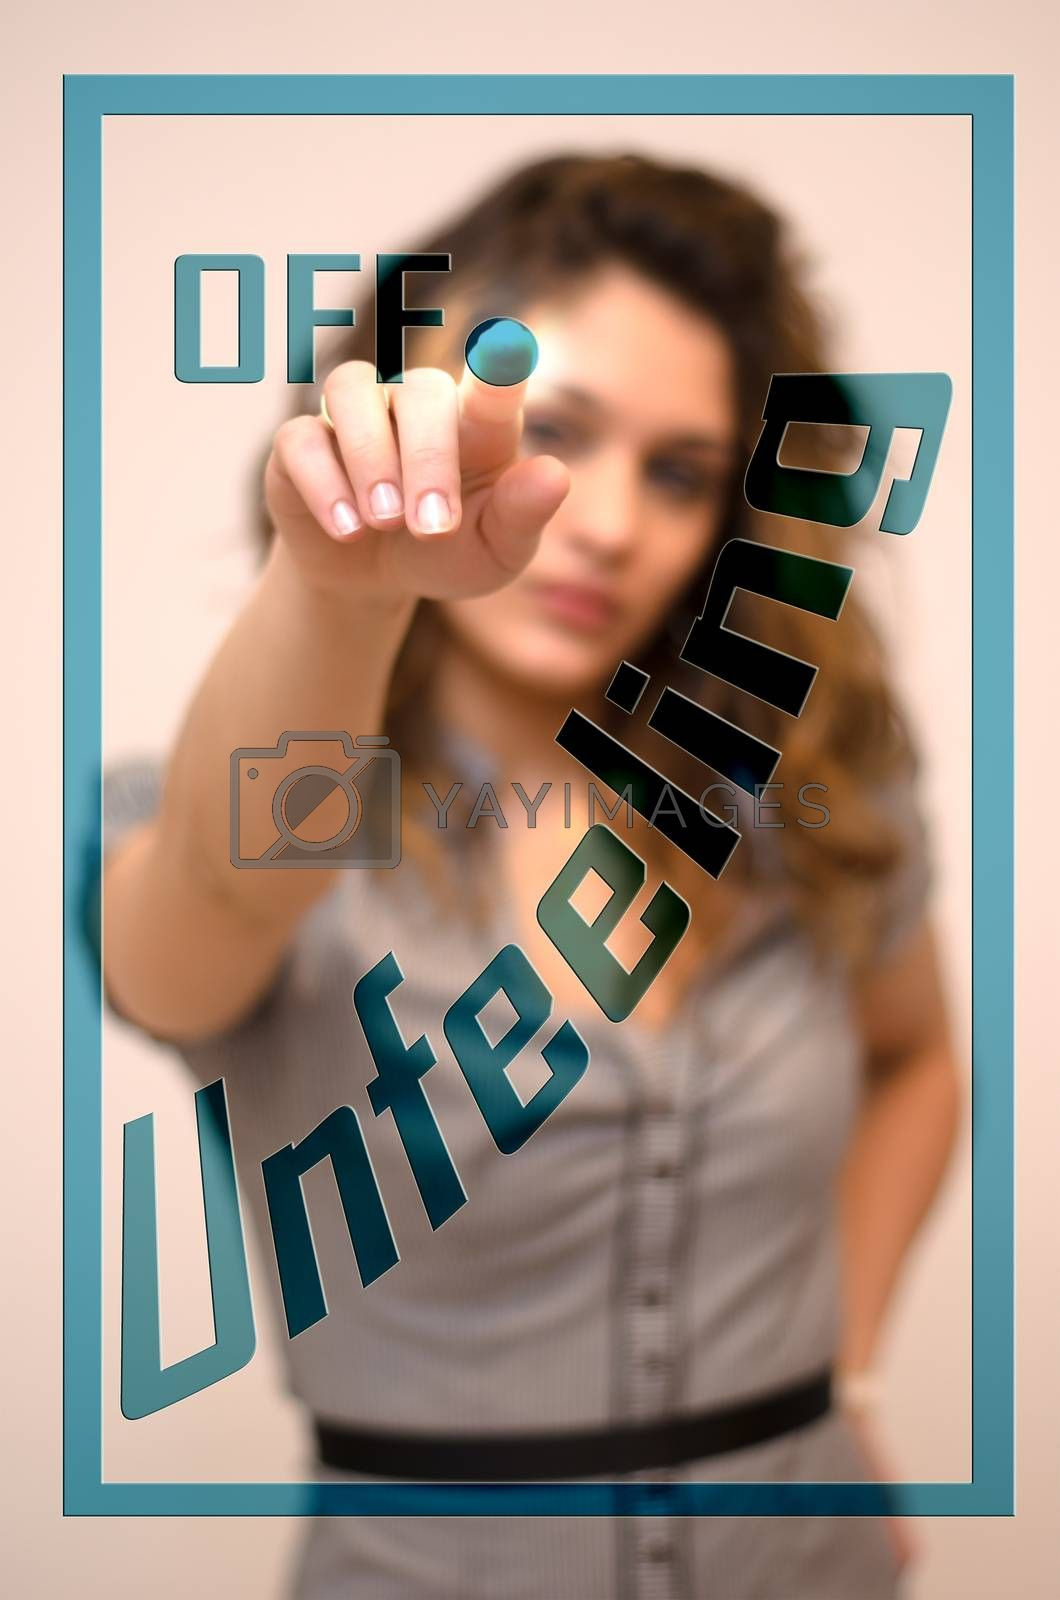 Royalty free image of woman turning off Unfeeling on panel by vepar5